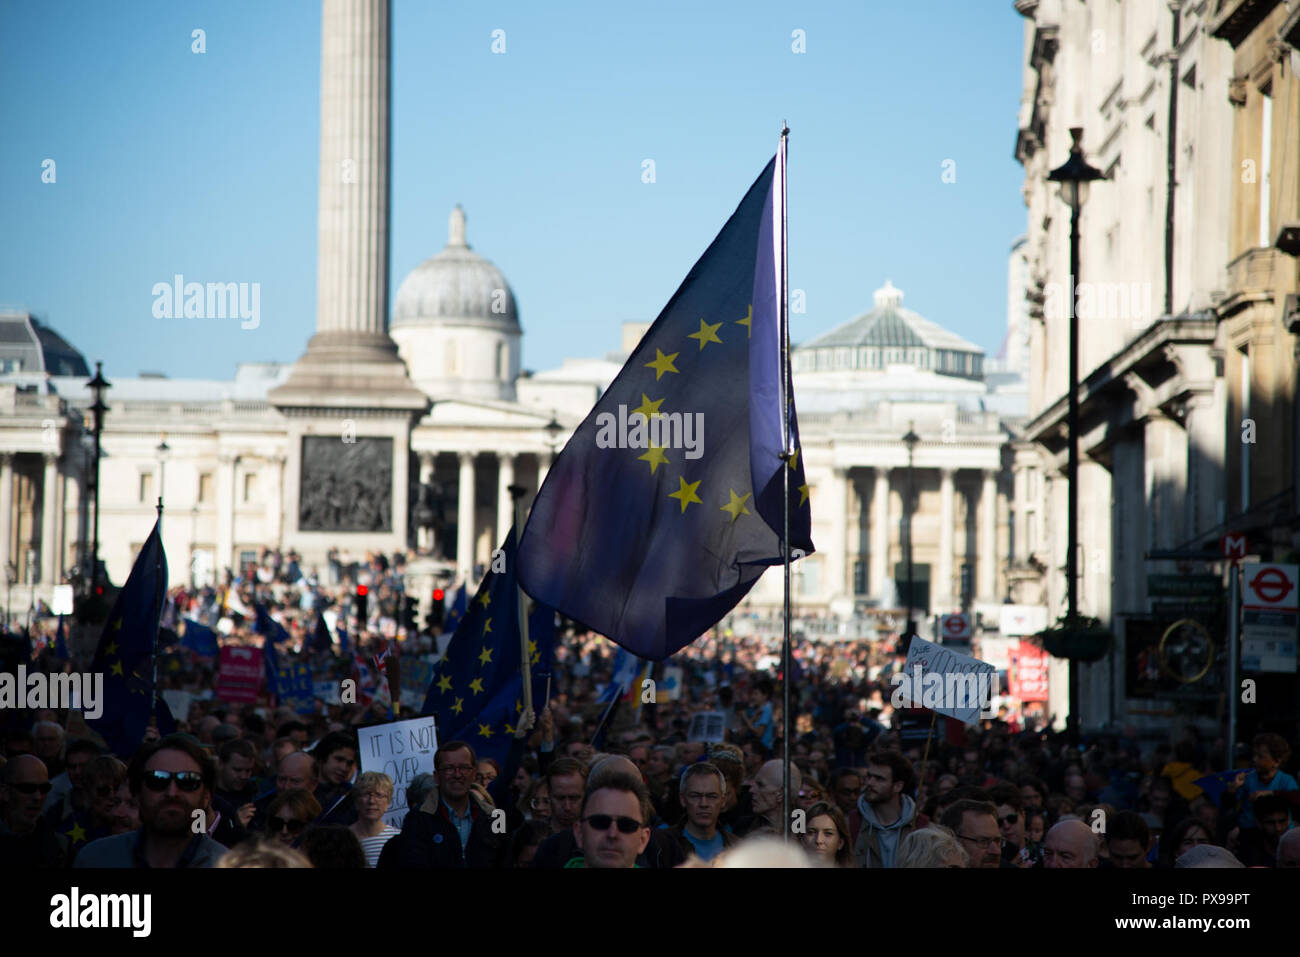 London, UK. 20th Oct, 2018. People's Vote - March for the Future against Brexit Credit: A.Bennett/Alamy Live News. - Stock Image